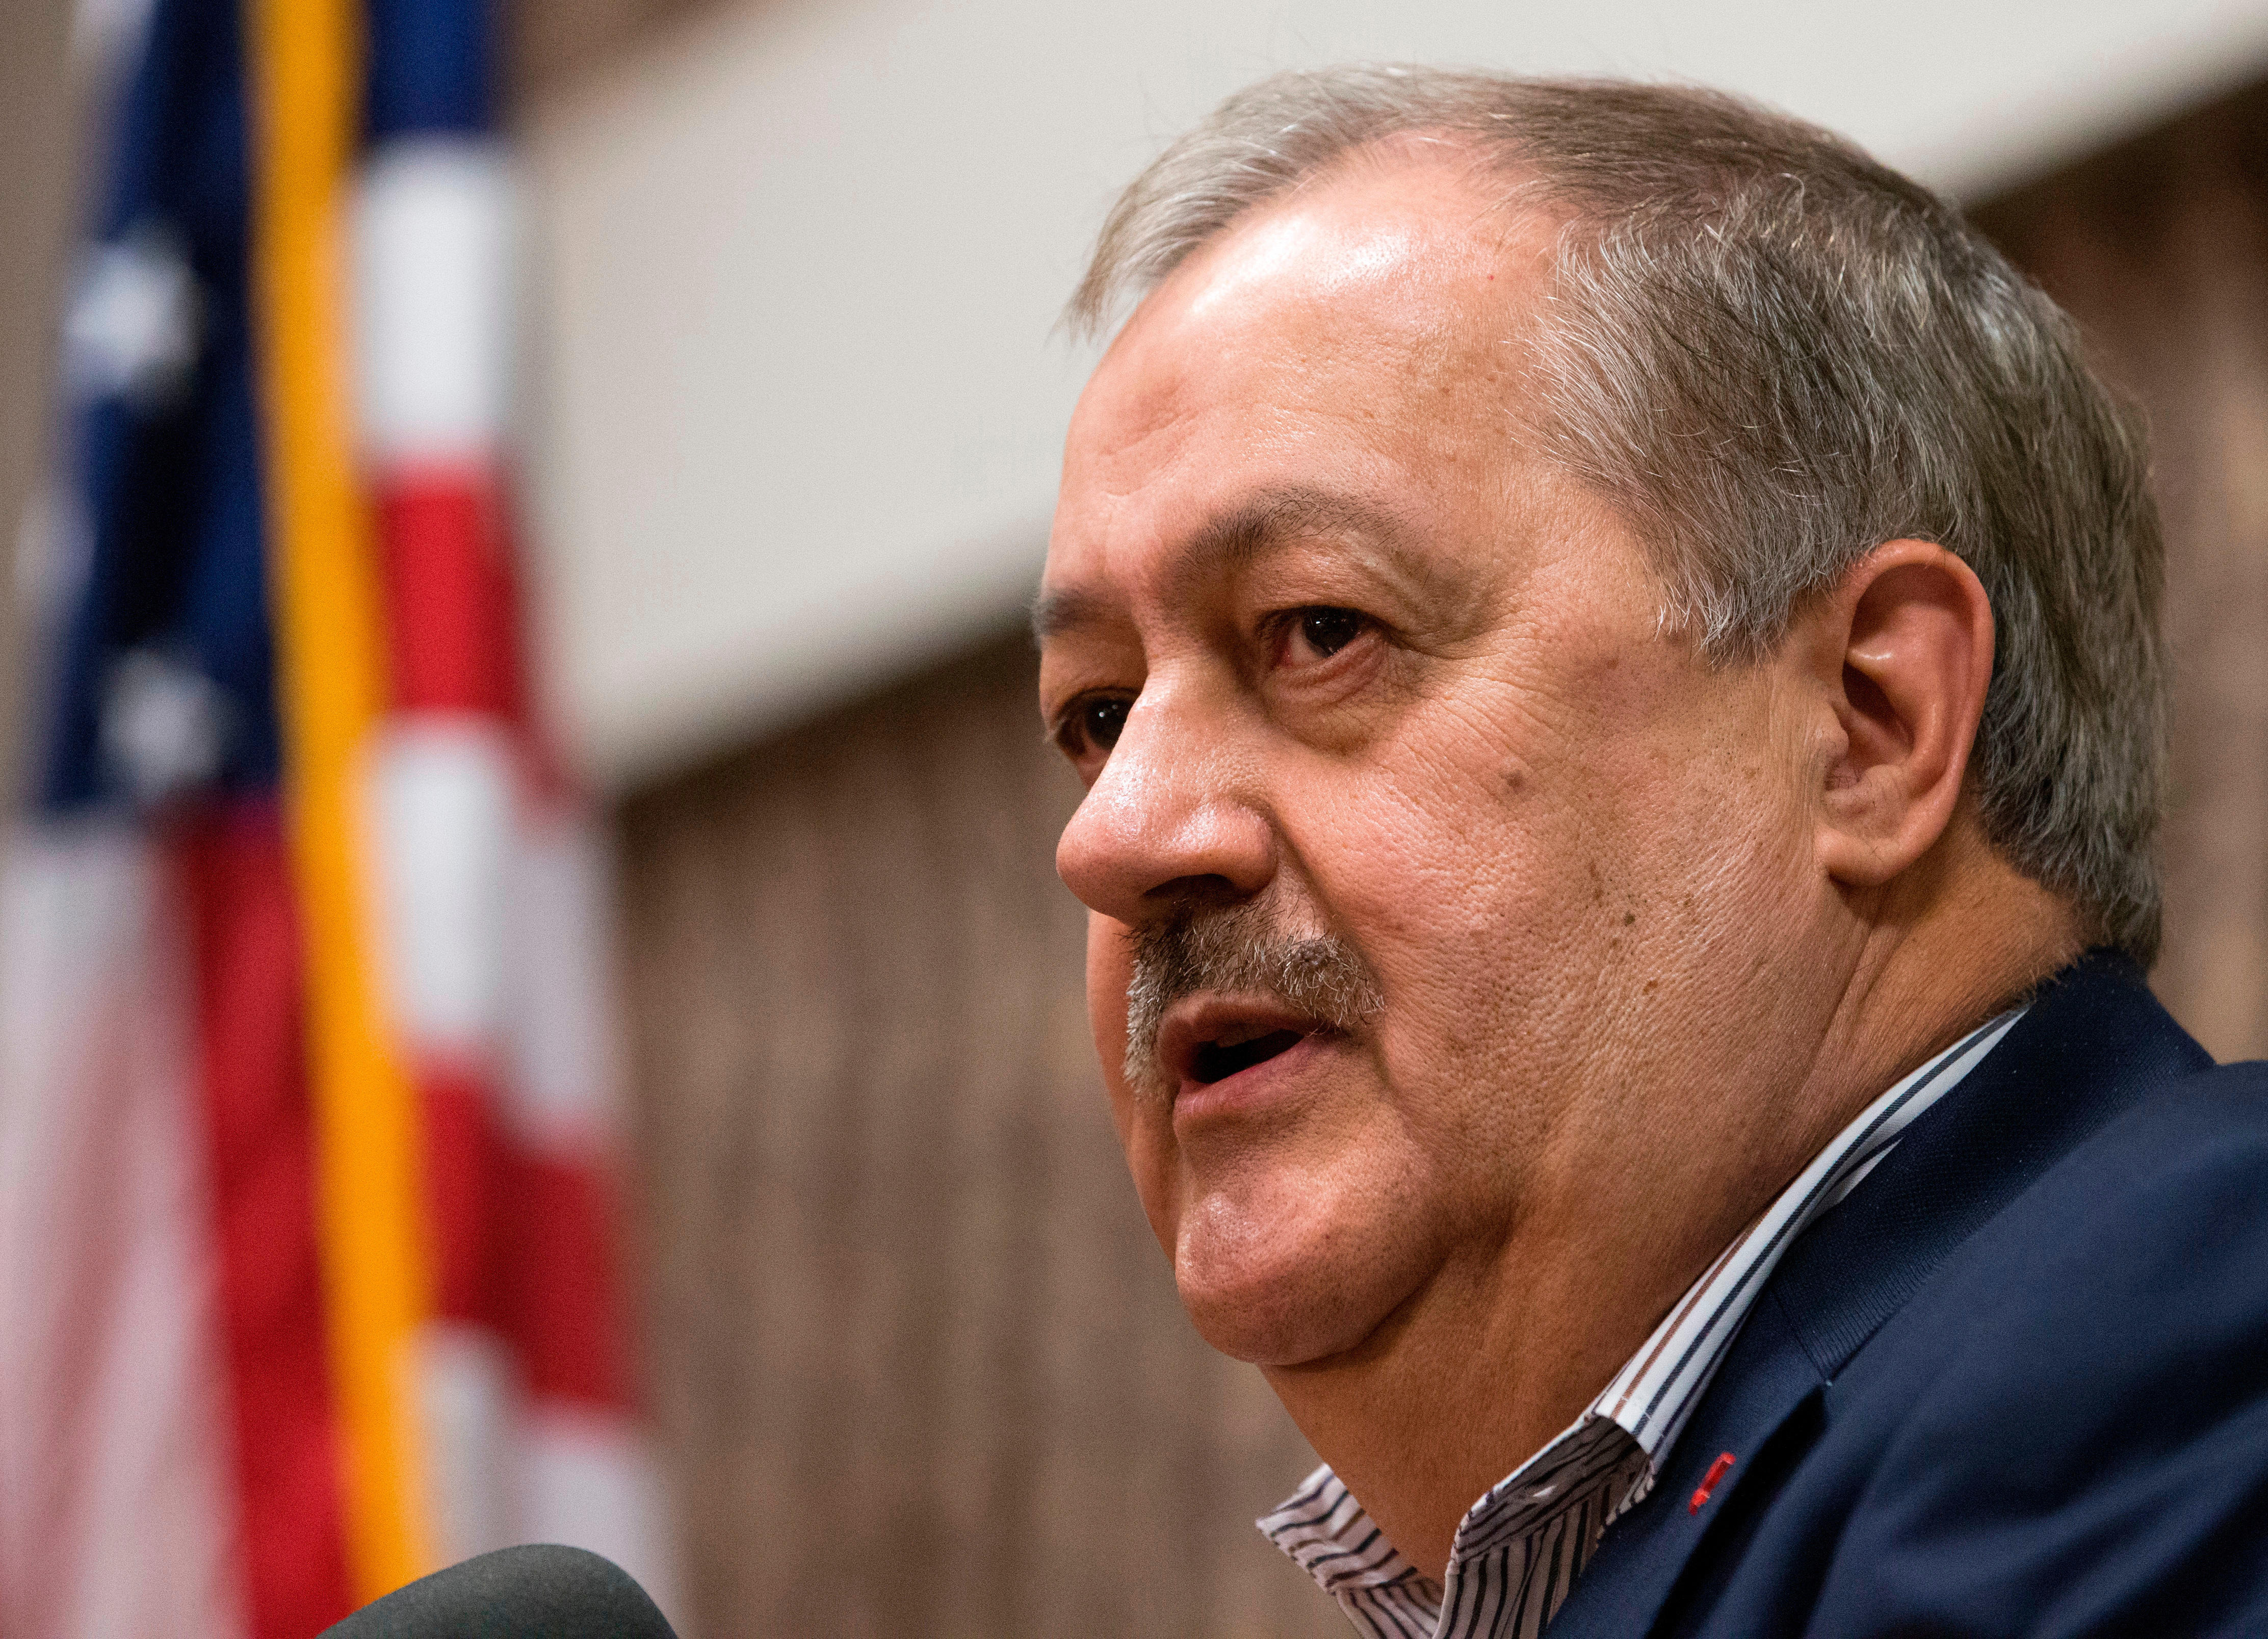 Don Blankenship won't rule out third party bid in West